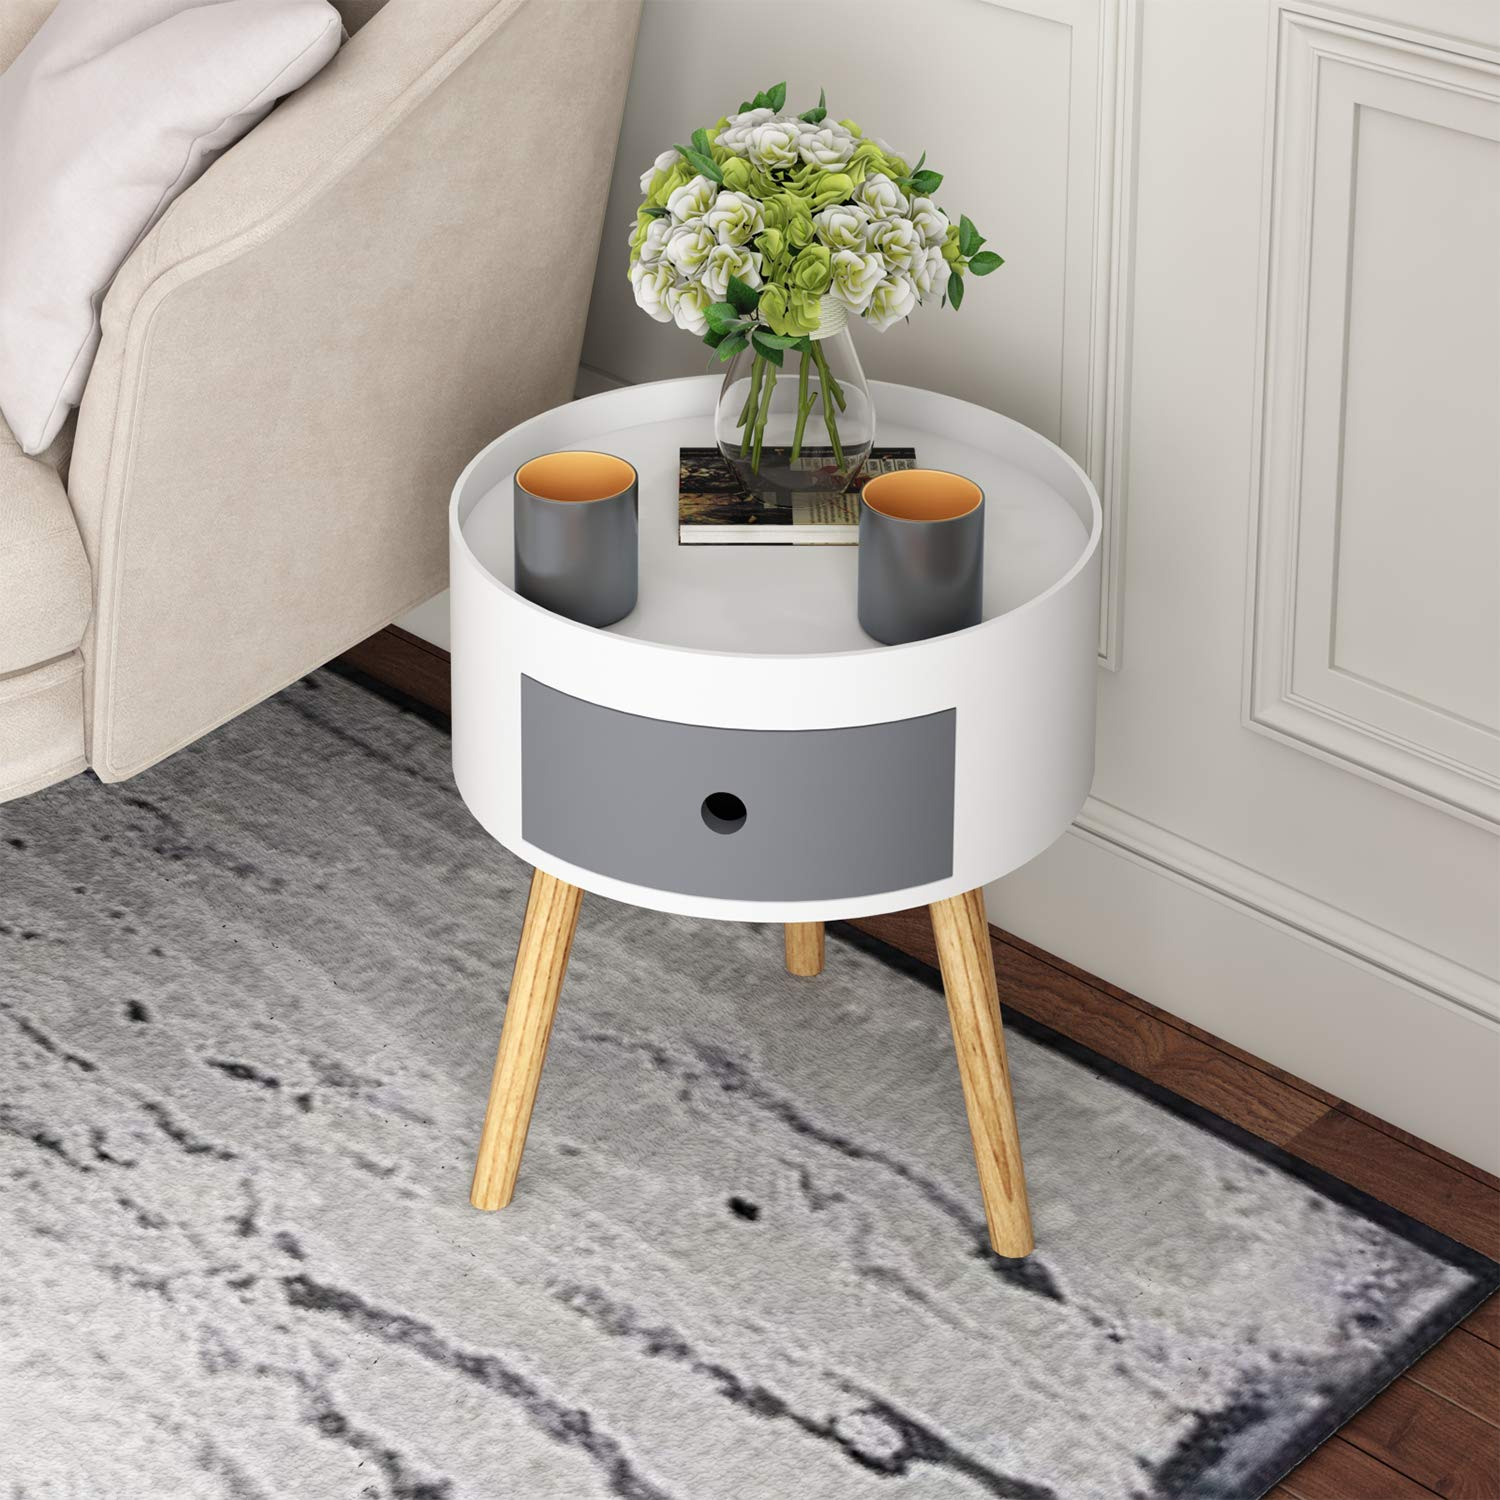 Joolihome White Wooden Bedside Table With Drawers Scandinavian Style Round Sofa Table End Table Side Table Corner Table Bedroom Furniture 38x38x40cm Buy Online In Grenada At Grenada Desertcart Com Productid 170695470